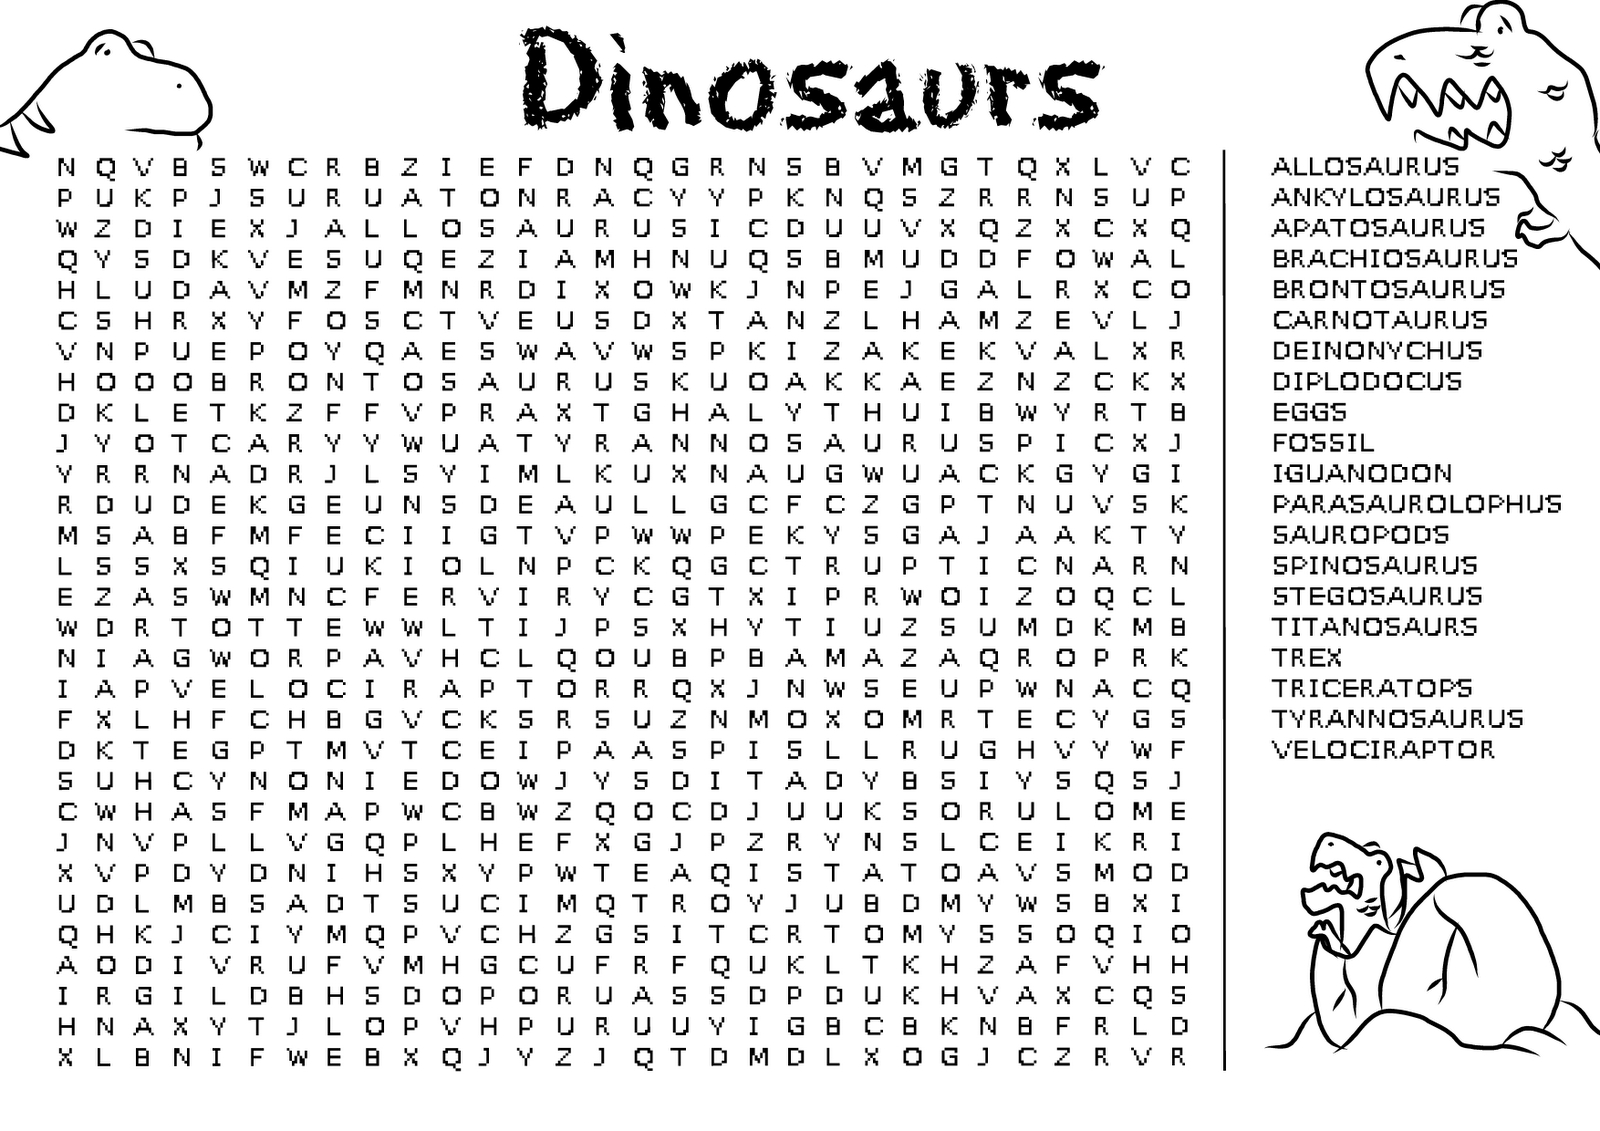 Word Search Games For Adults And Teens - Best Coloring Pages For Kids - Free Printable Dinosaur Word Search